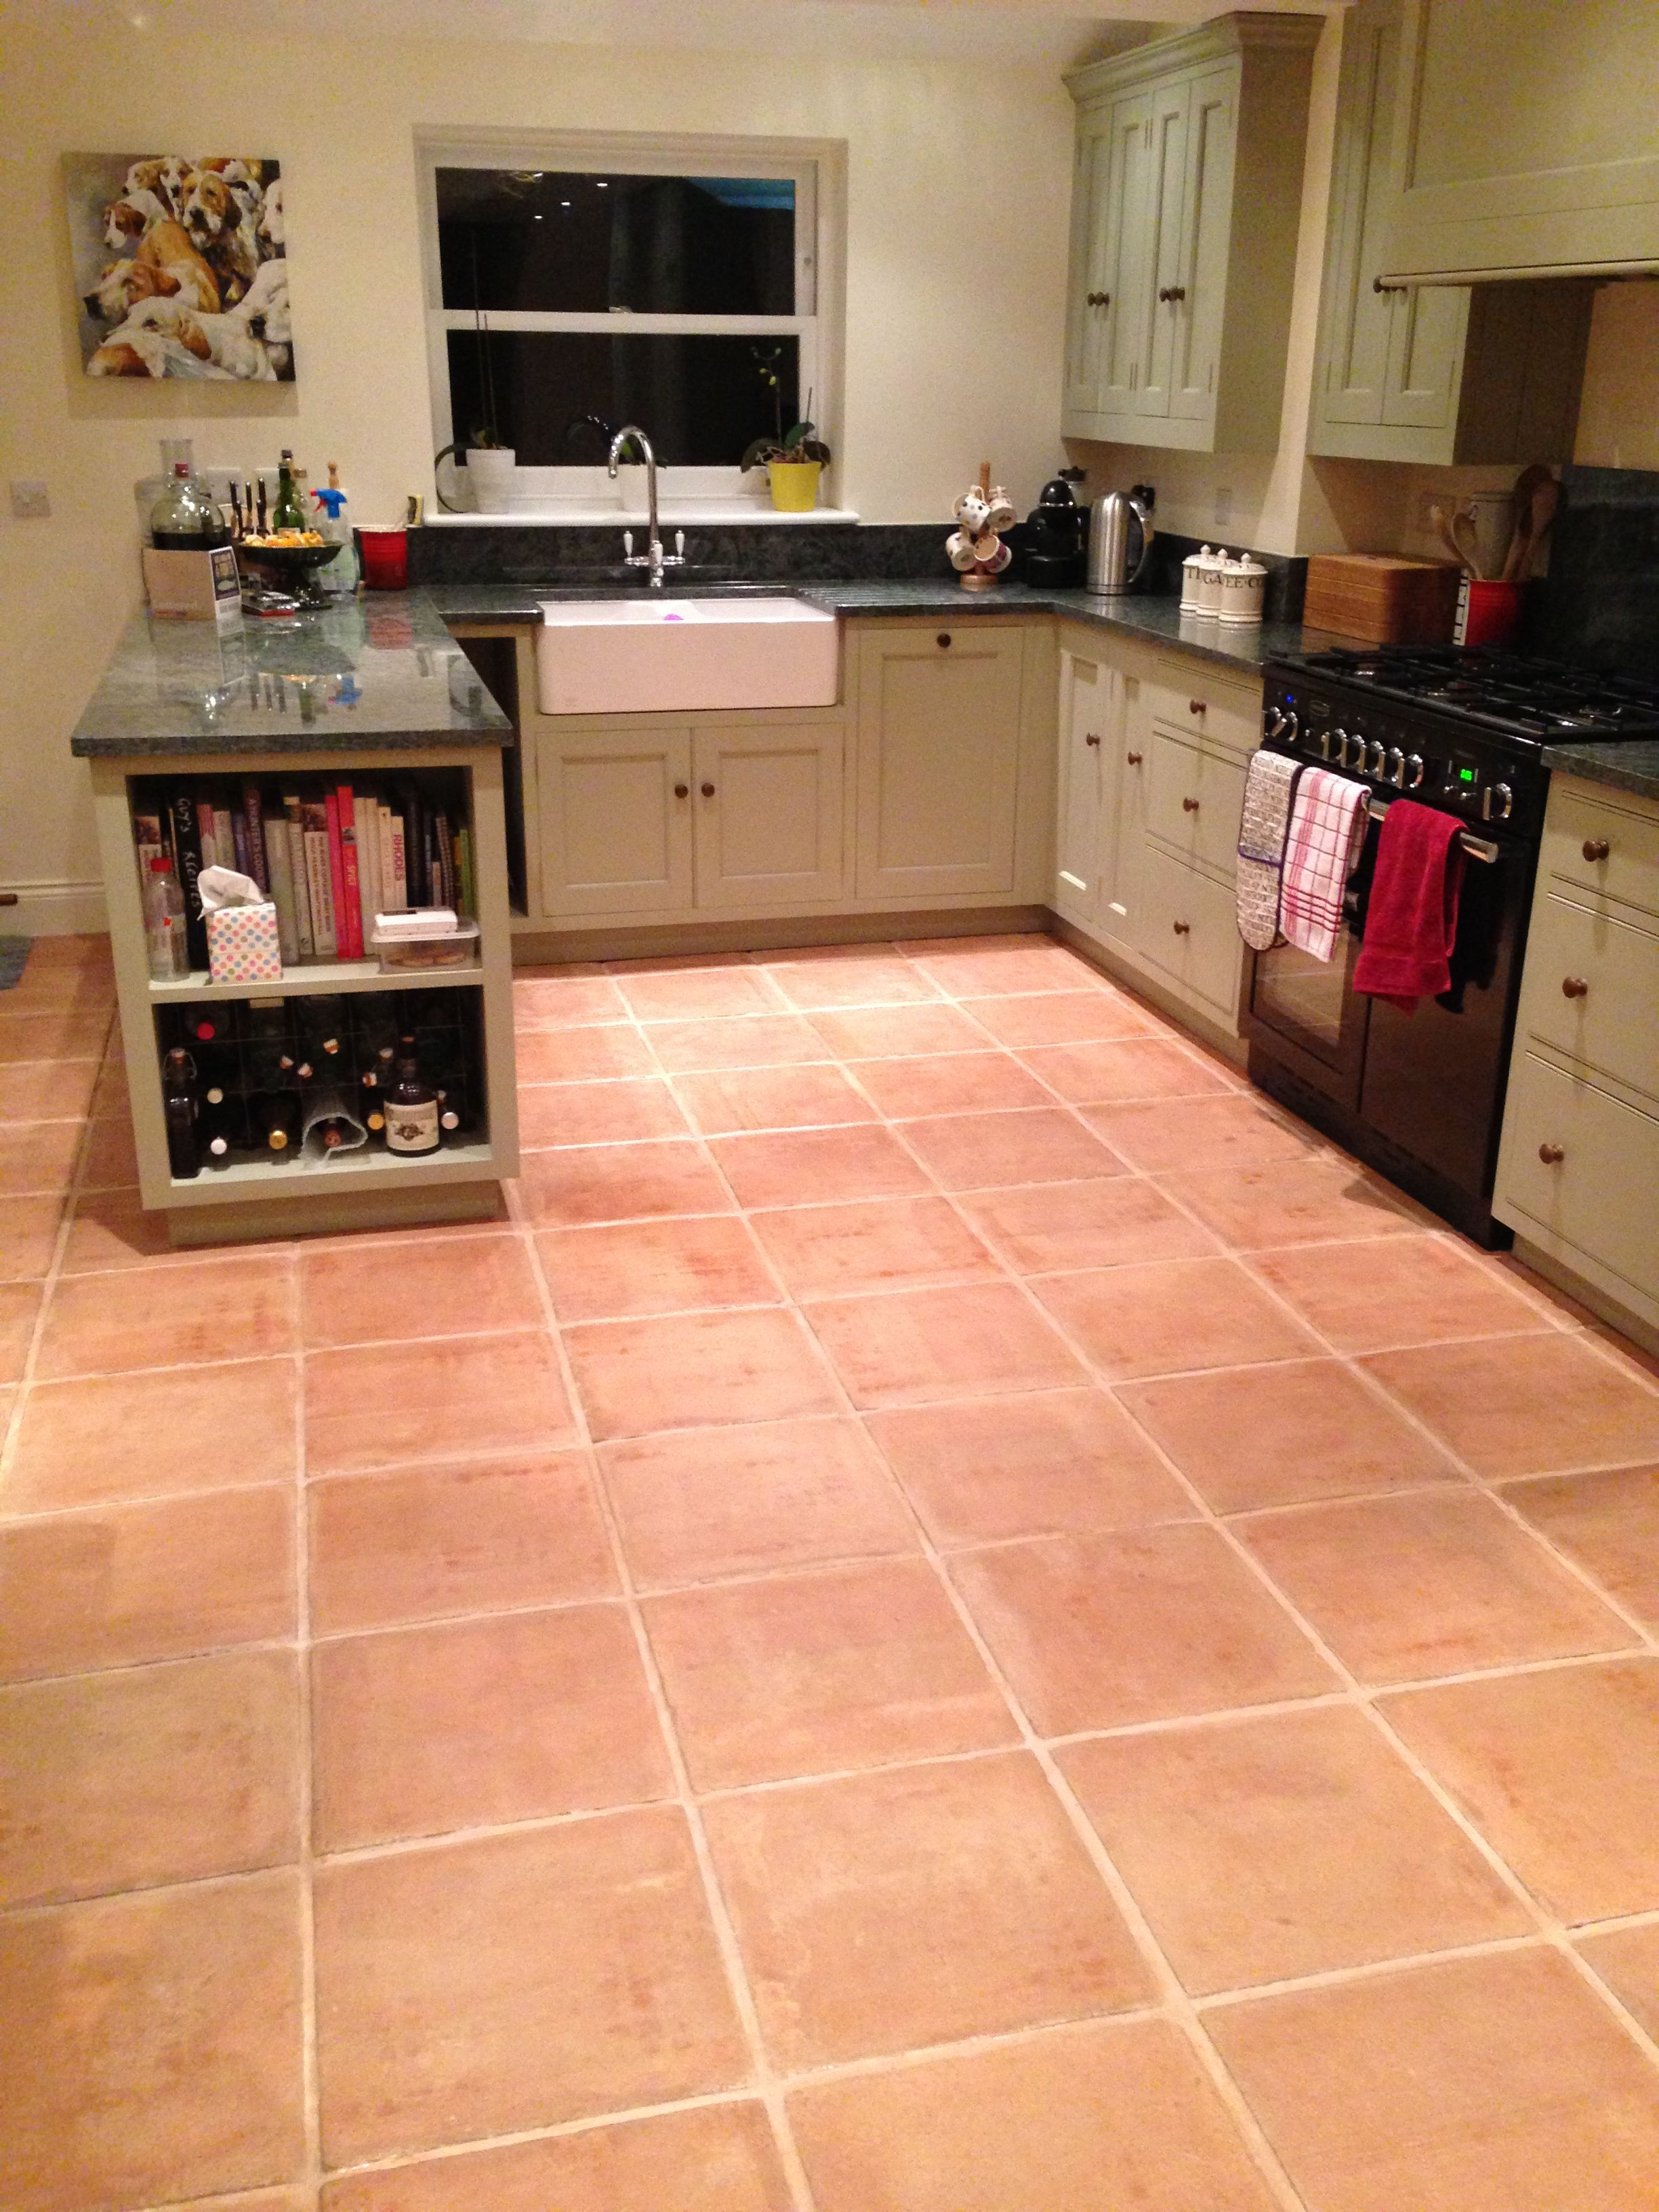 Kitchen Floor Tiles Design In Pakistan Ceramic Kitchen Wall Tiles At Factory Rates Prices In